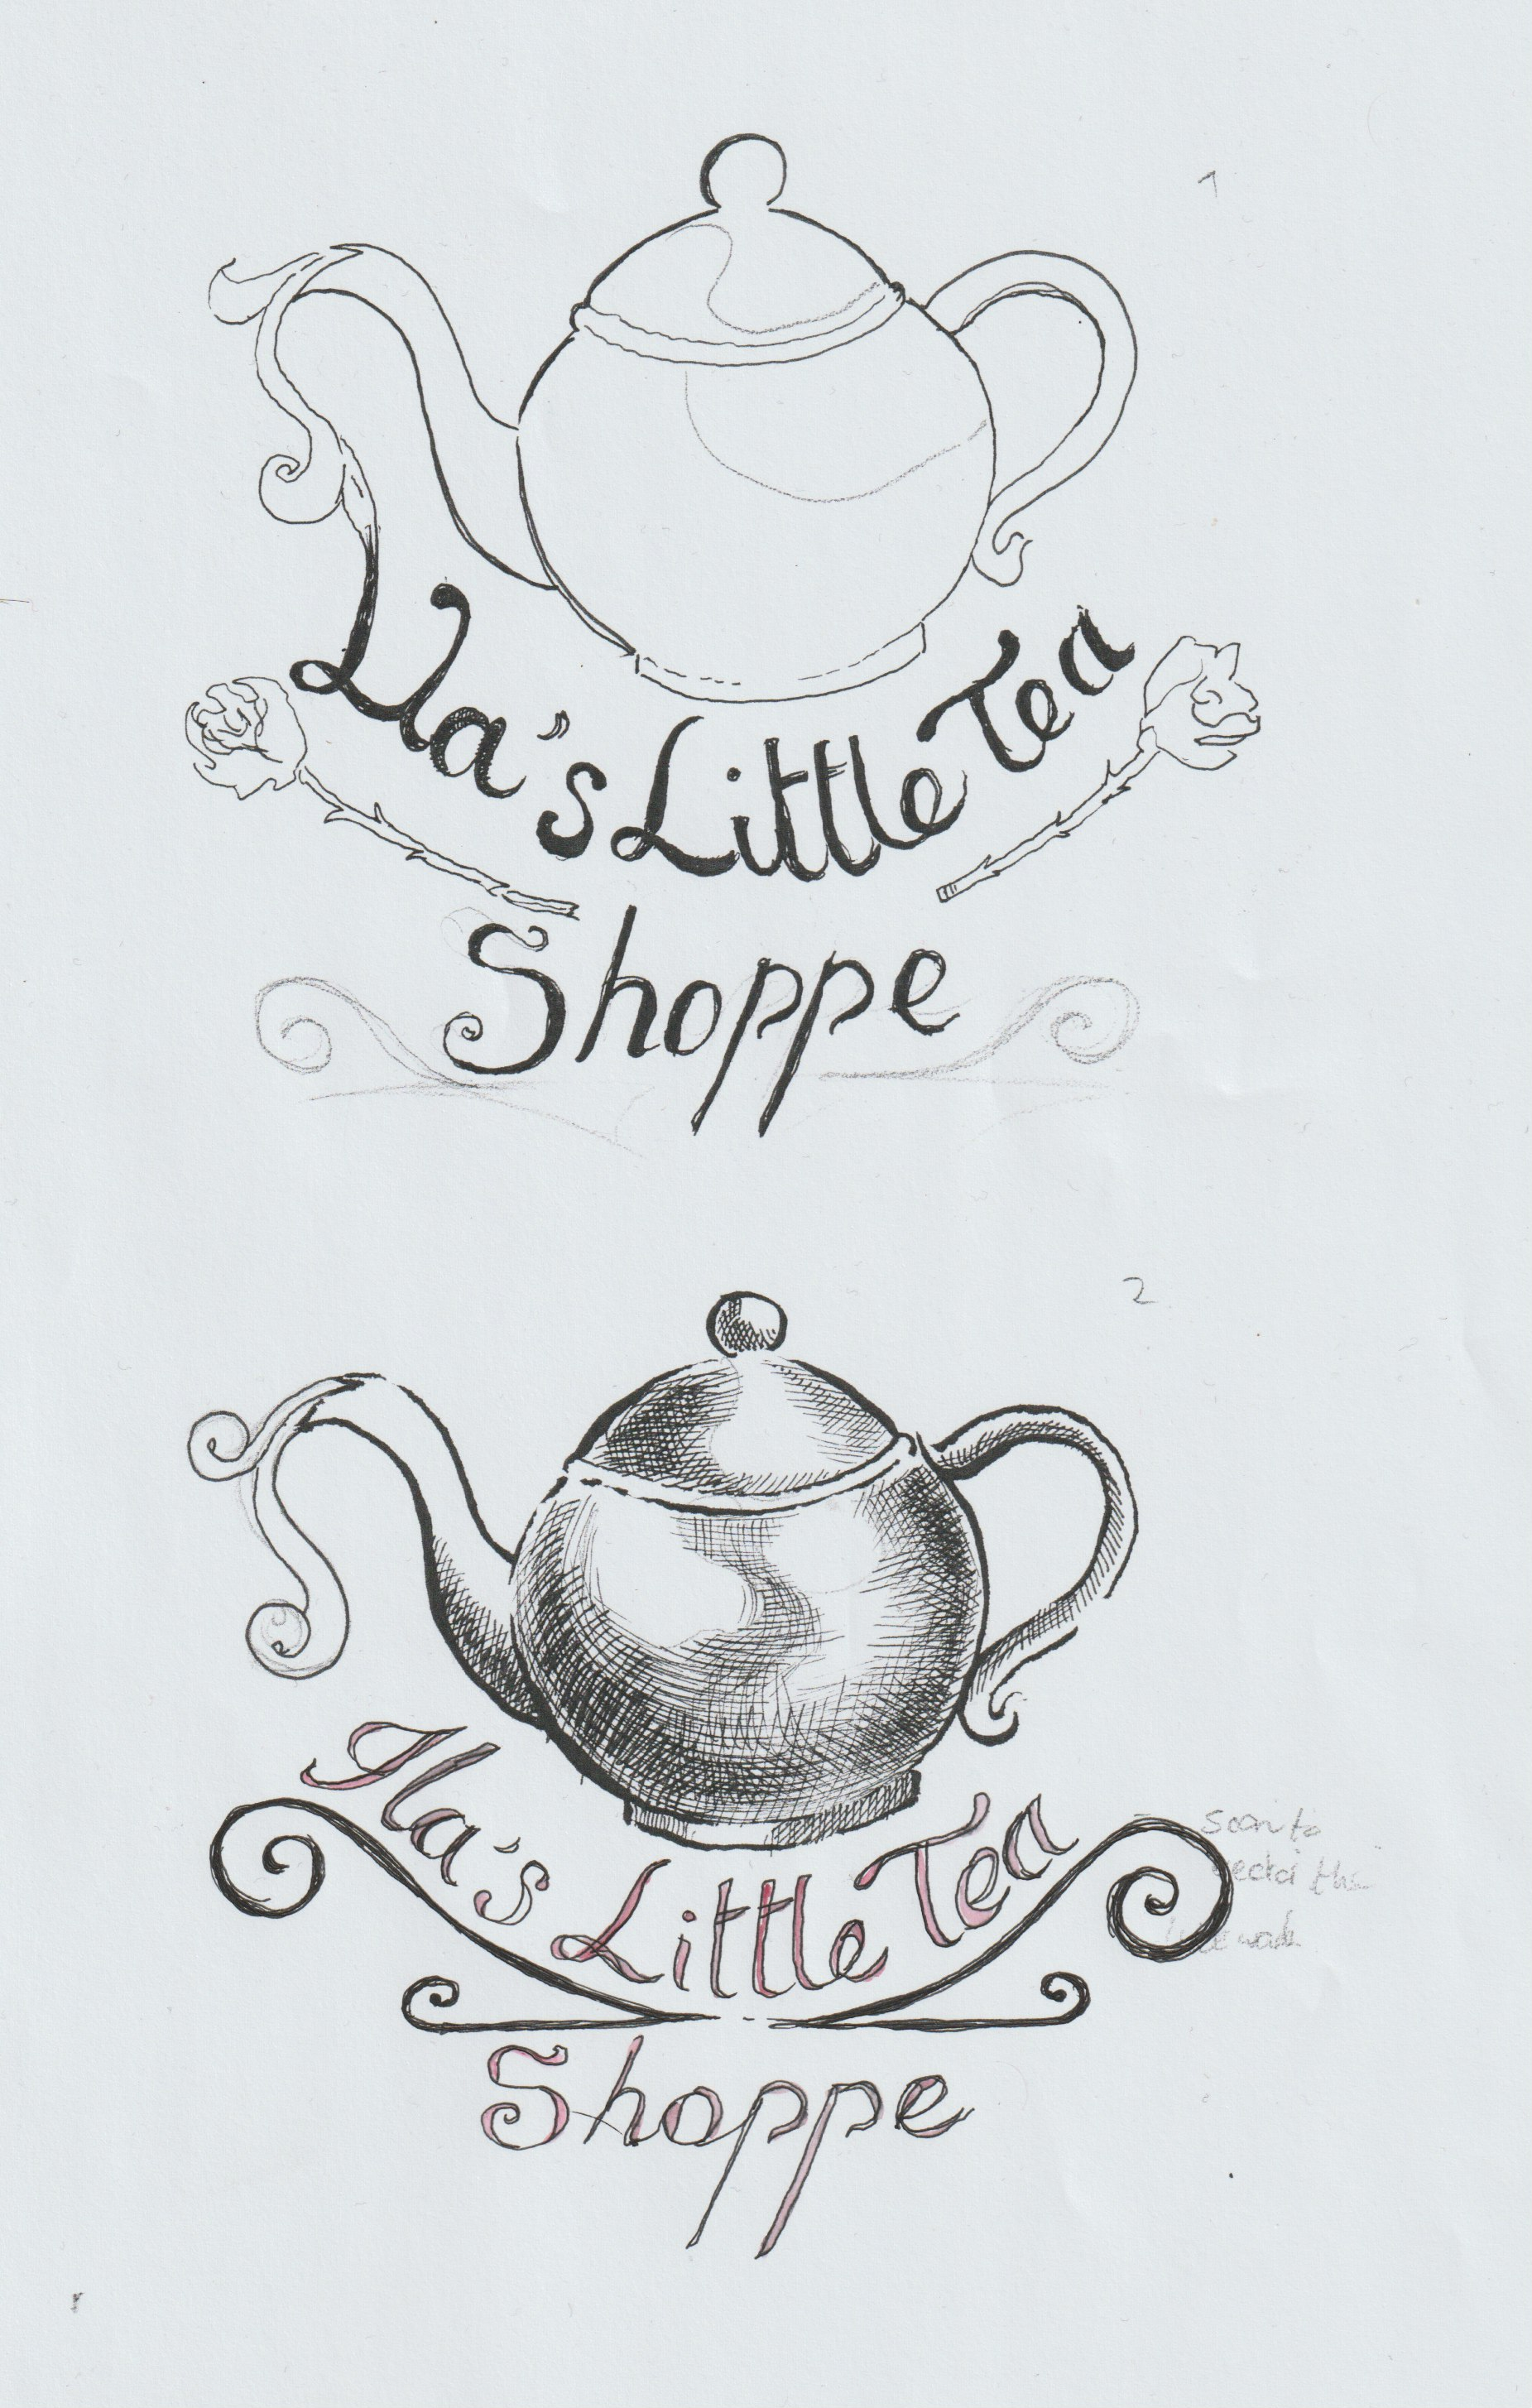 First initial thumbnails for the shop's logo for Ila. Ultimately this proved to be one of the stronger designs out of the others I had then proceeded to develop later on. With a more customized calligraphic inspired typeface.